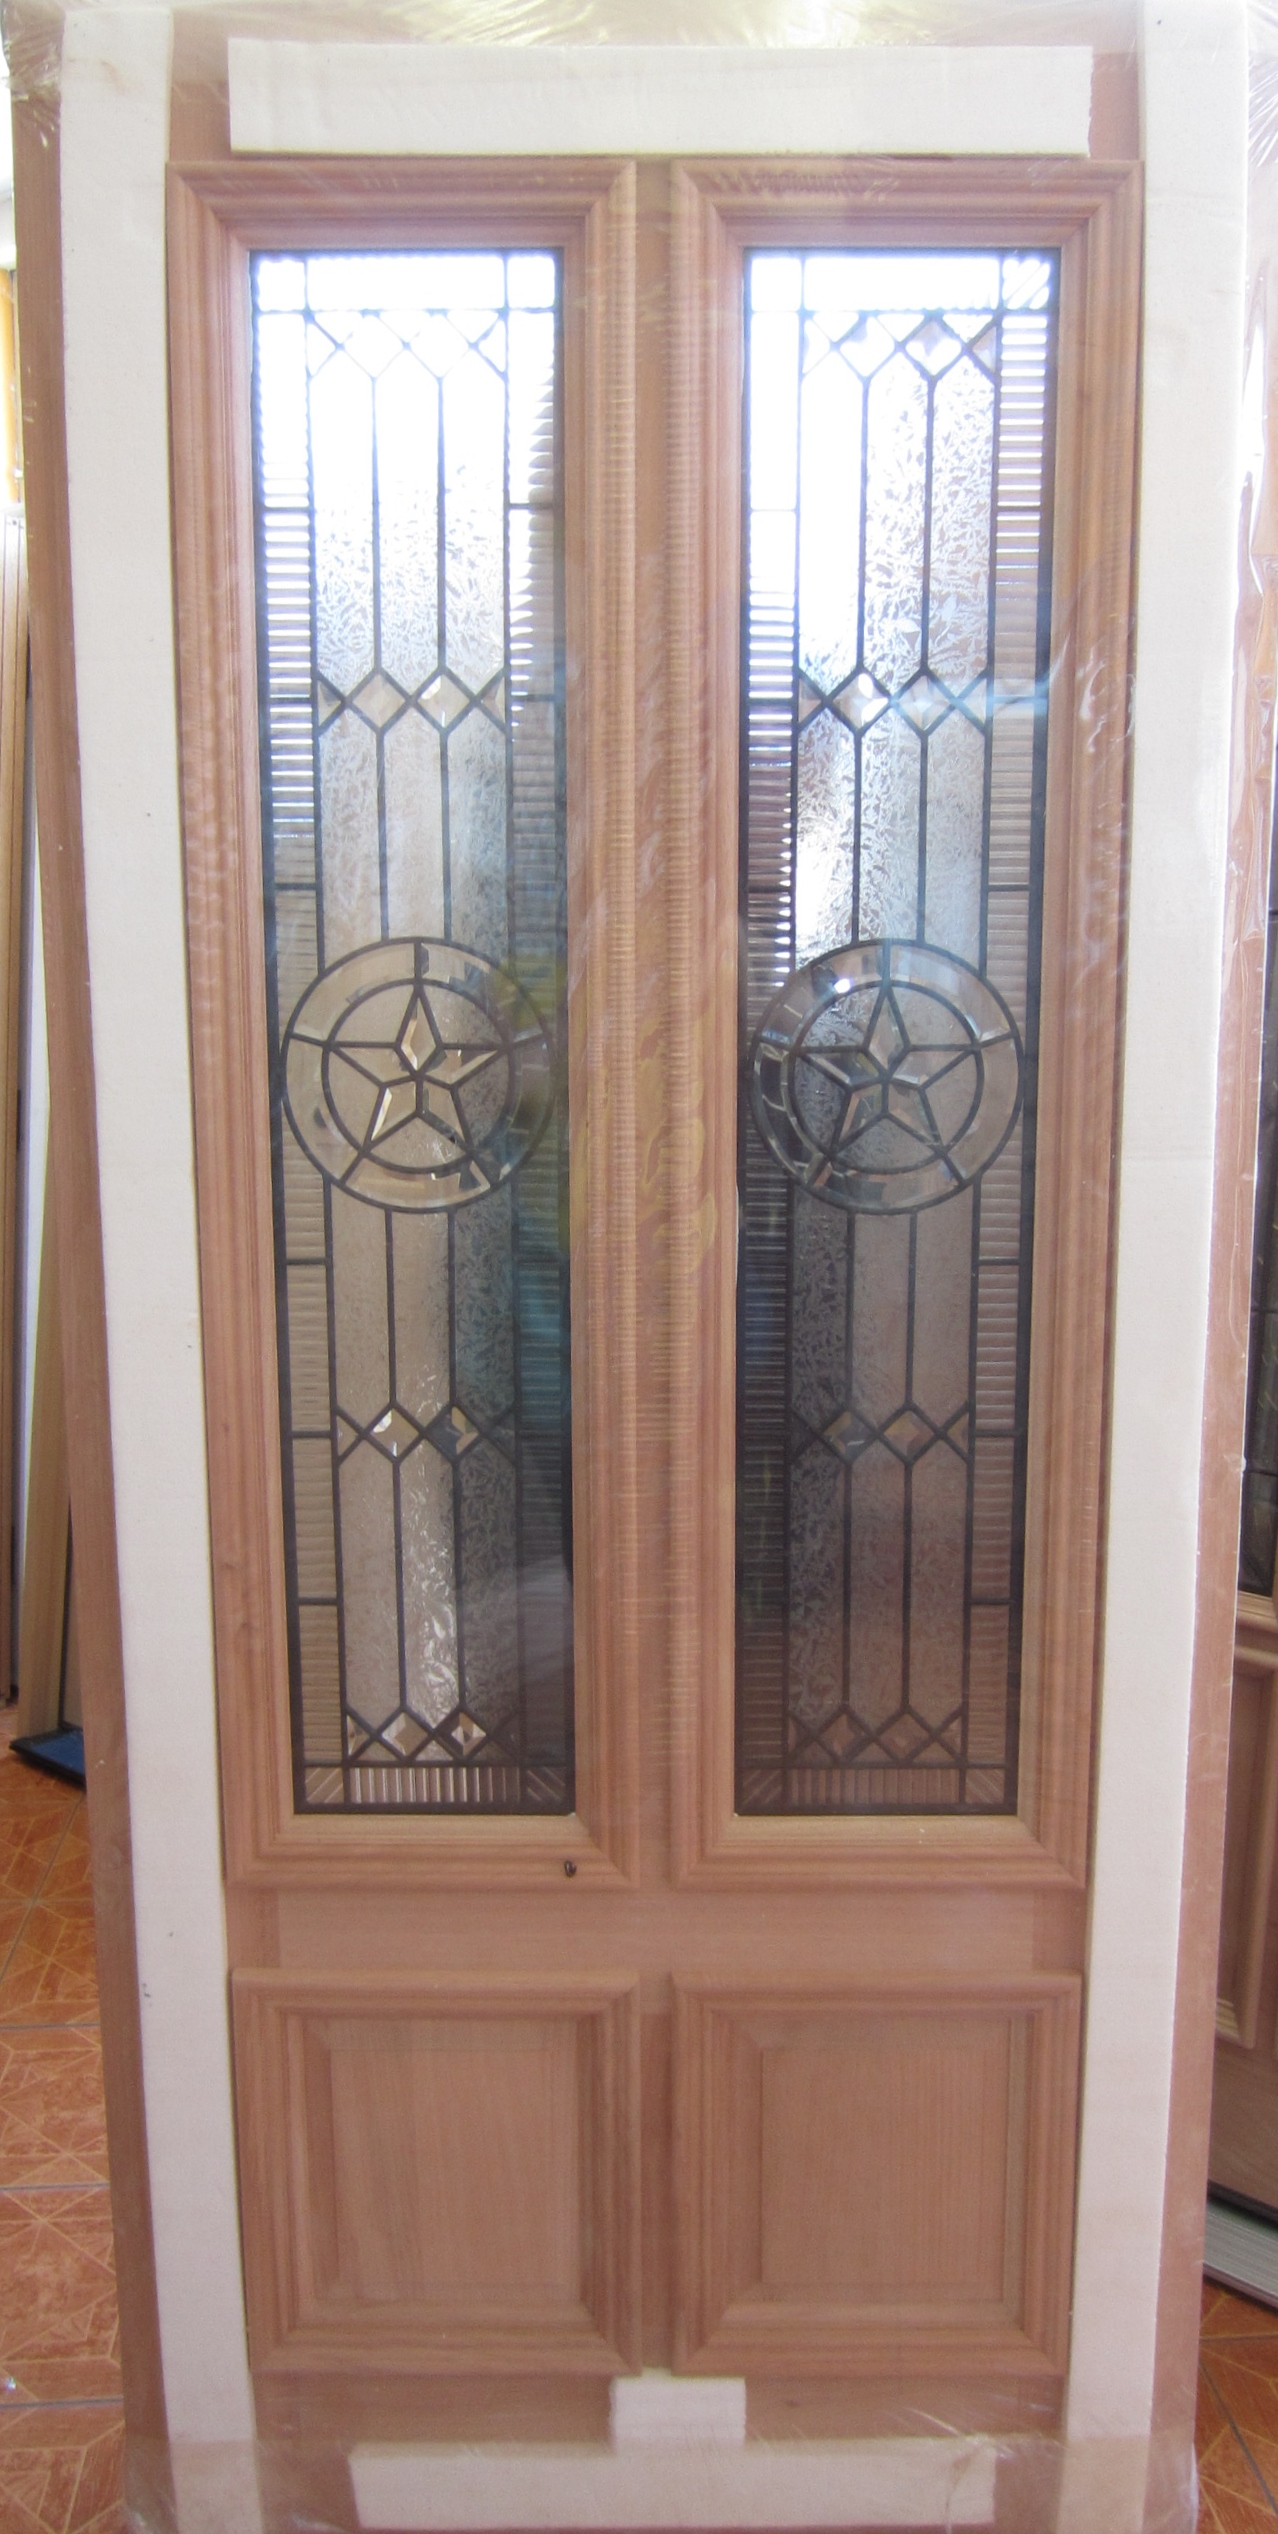 2534 #825B49 Doors Houston Doors Front Doors Houston   Doors Wood  image Wooden Doors Houston 45731278